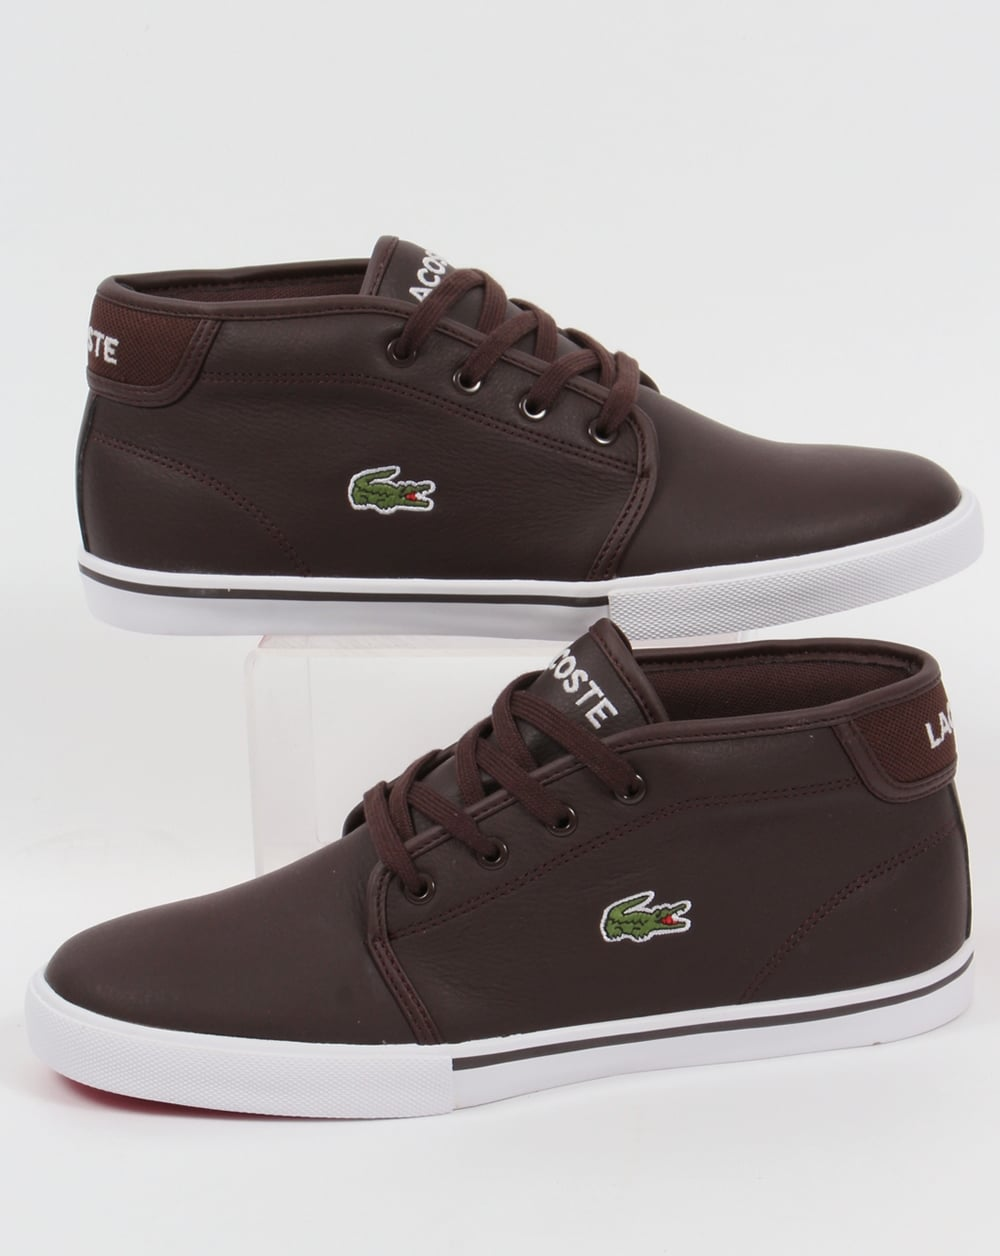 5860a3424df2 Lacoste High Top Trainers Mens